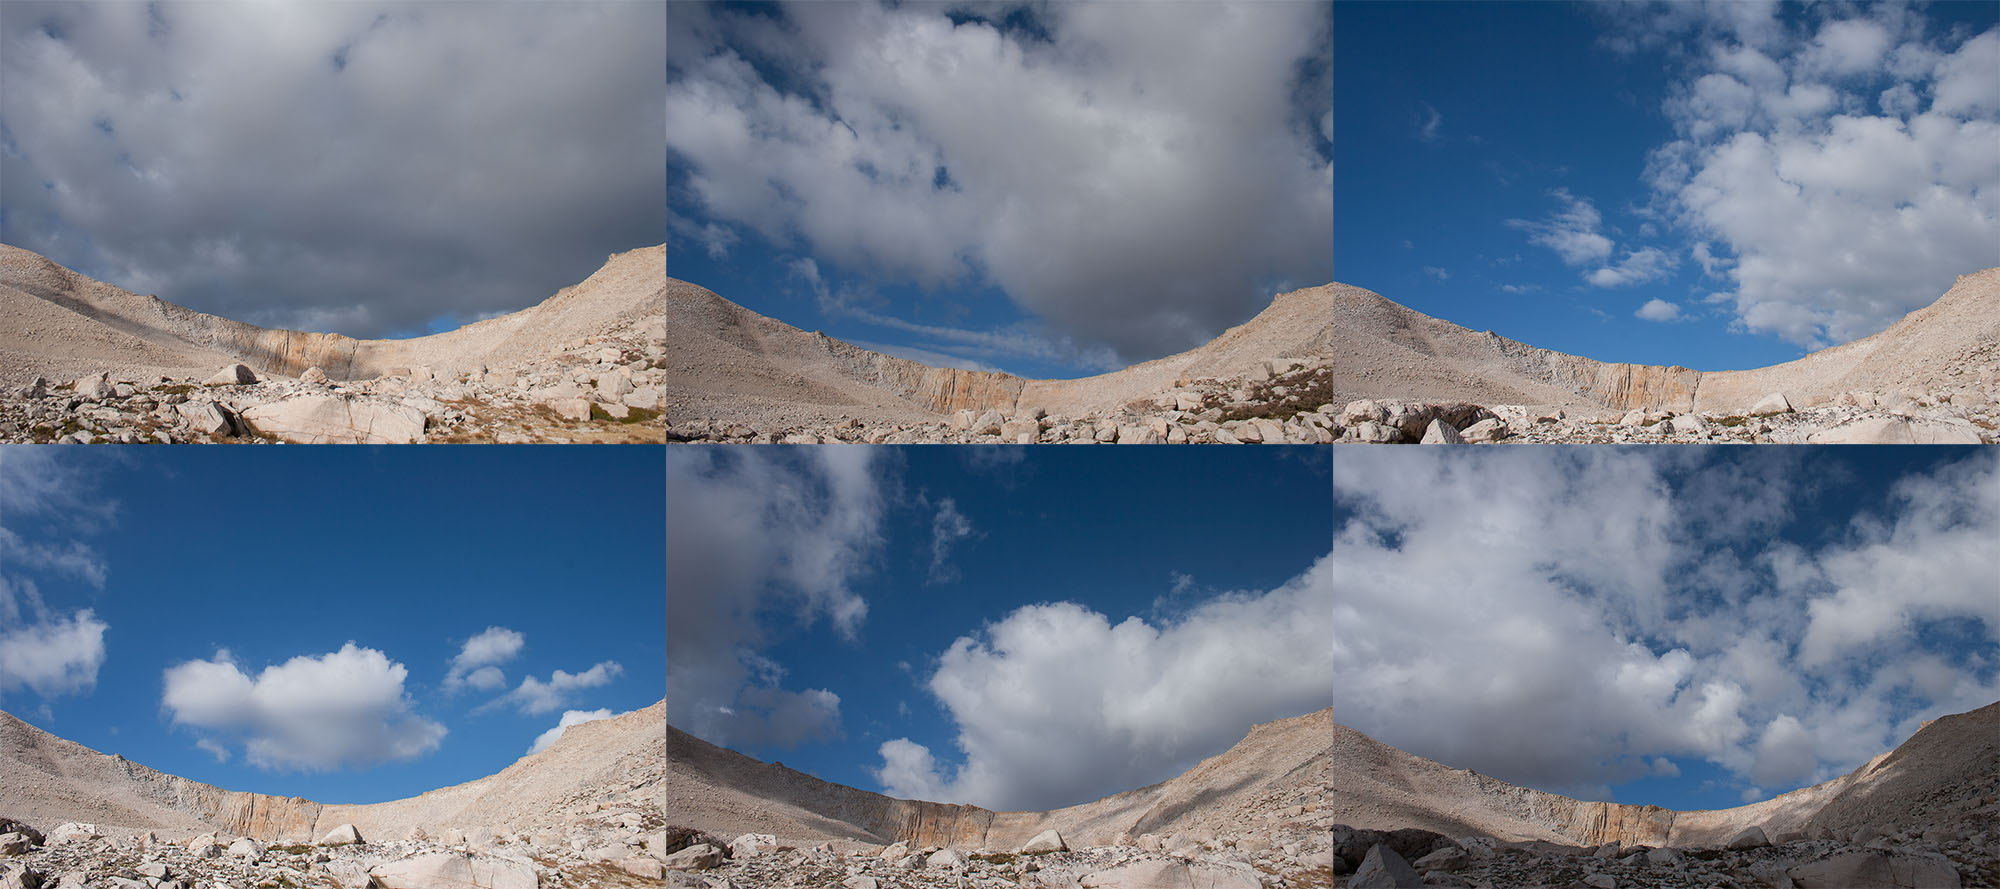 The same rock face between Cirque Peak and New Army Pass, pictures taken within half an hour